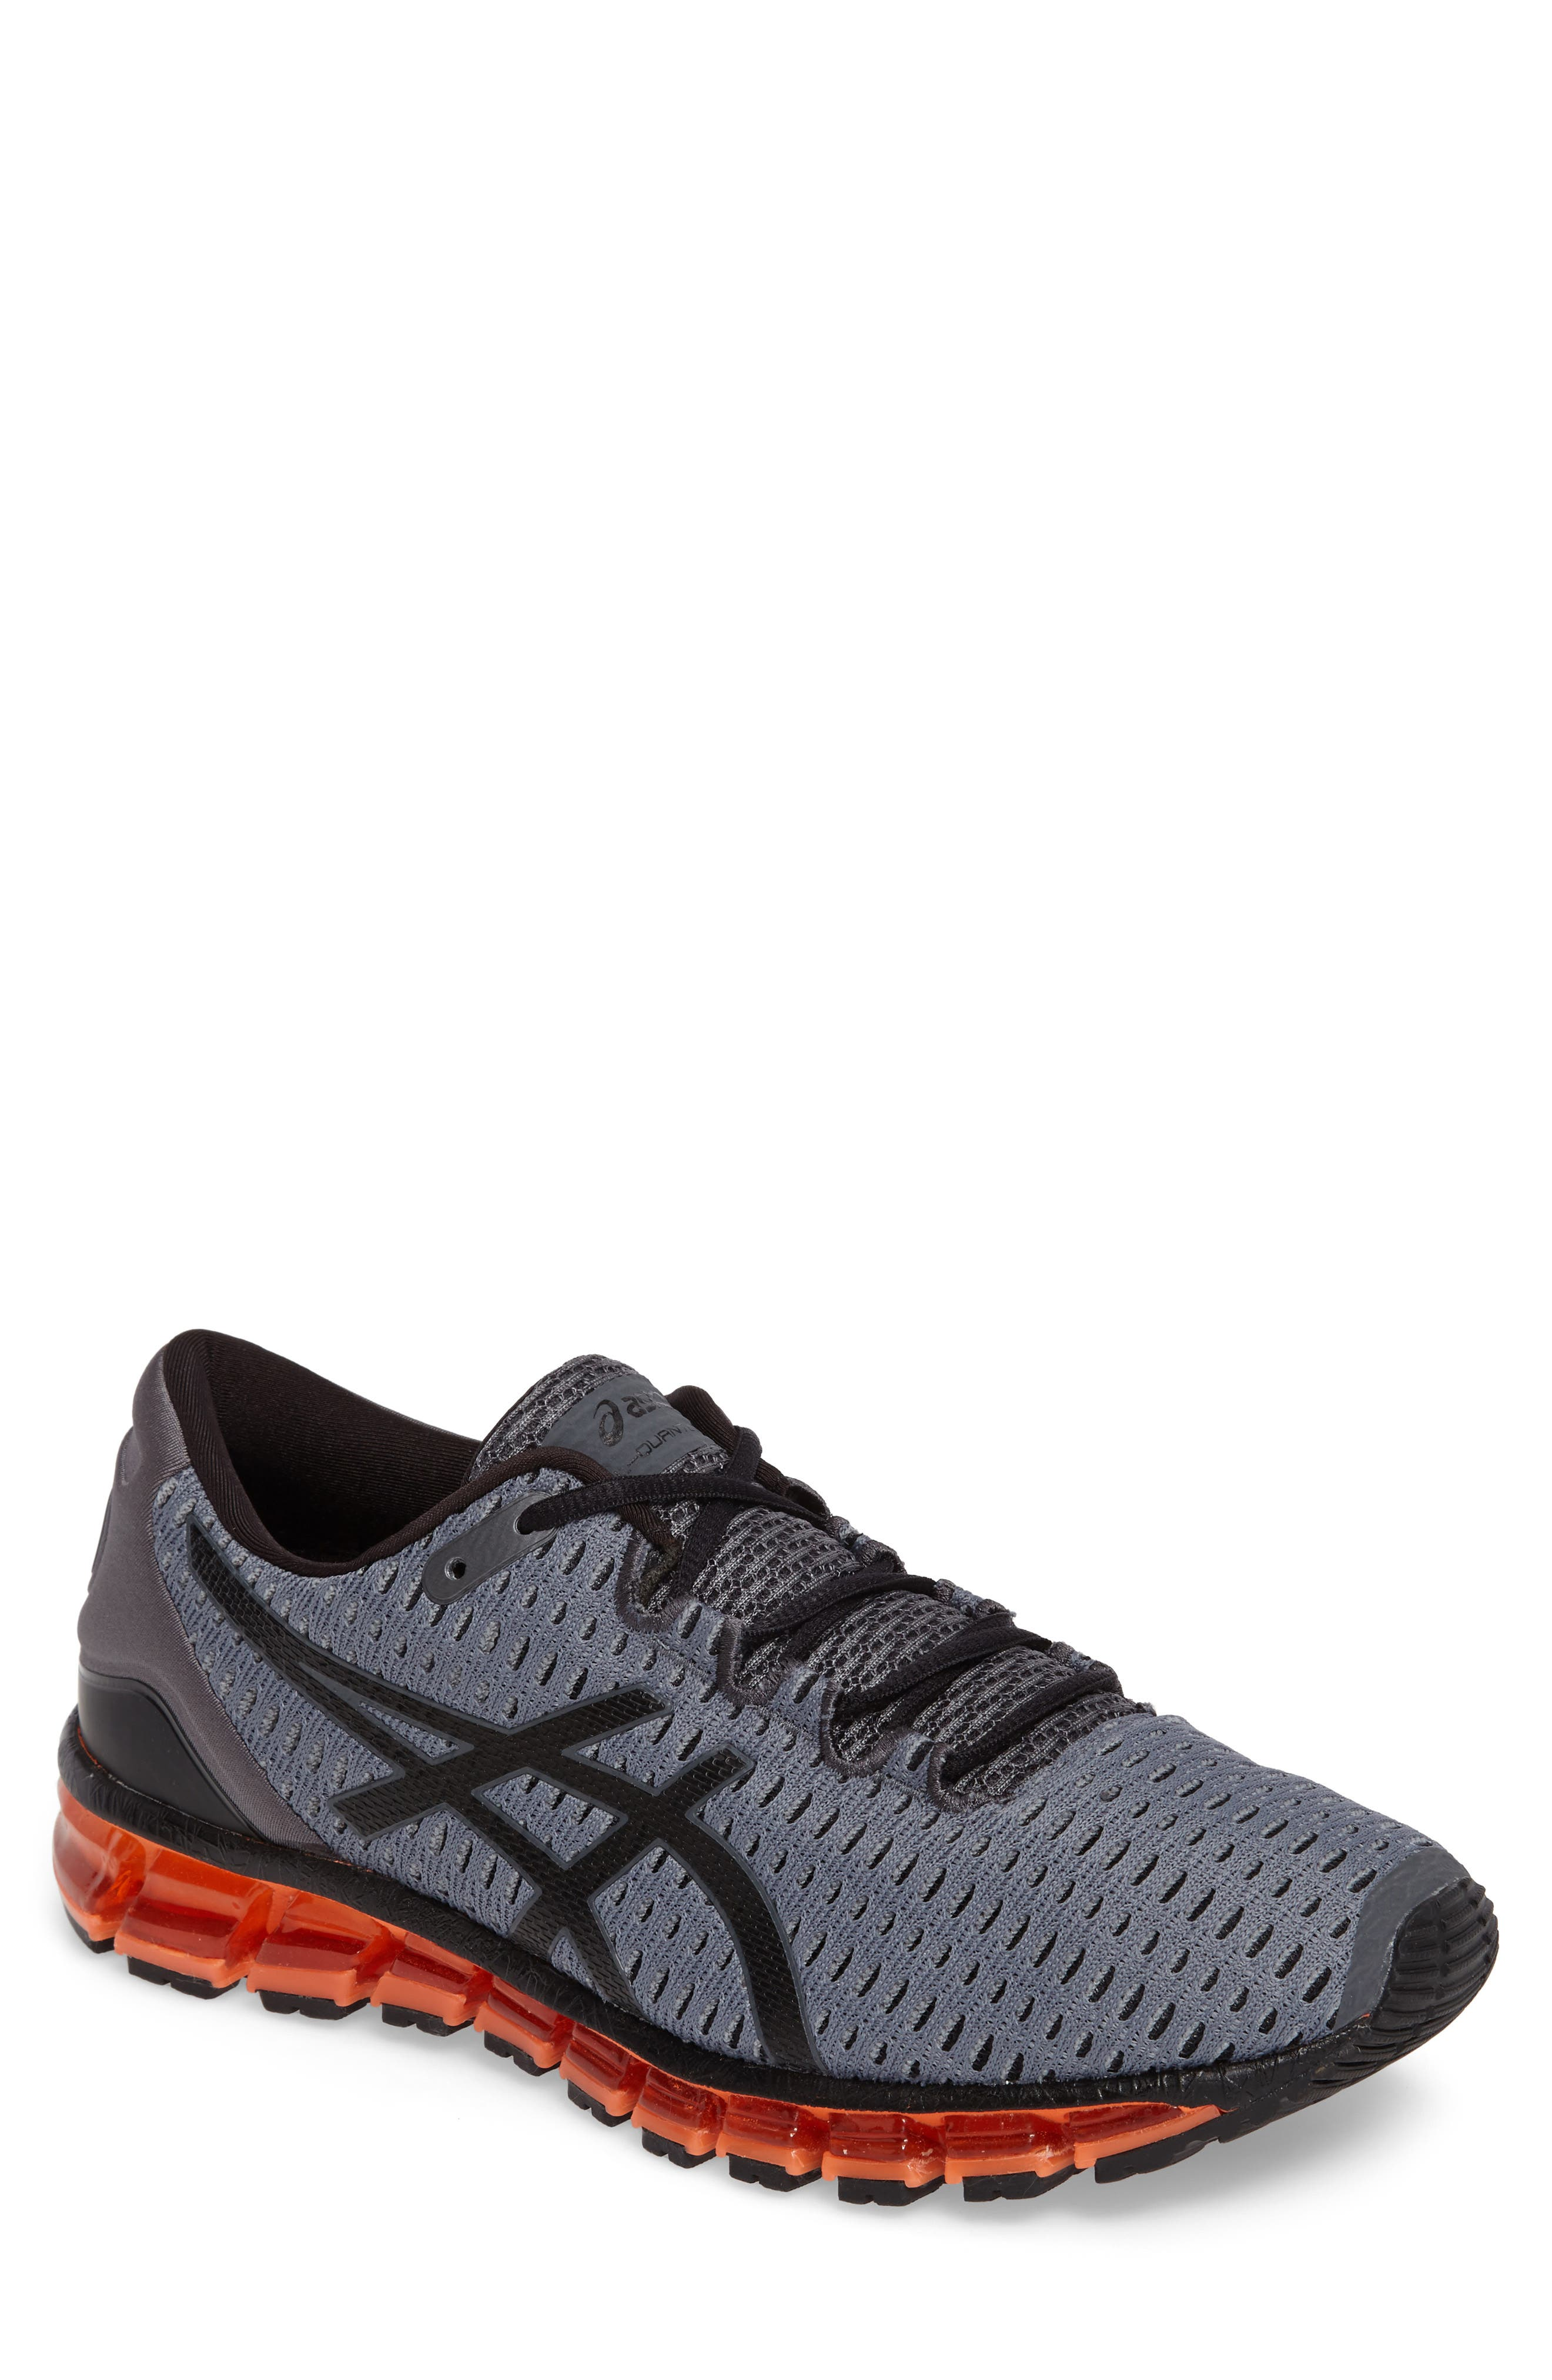 GEL-Quantum 360 Running Shoe,                             Main thumbnail 1, color,                             001